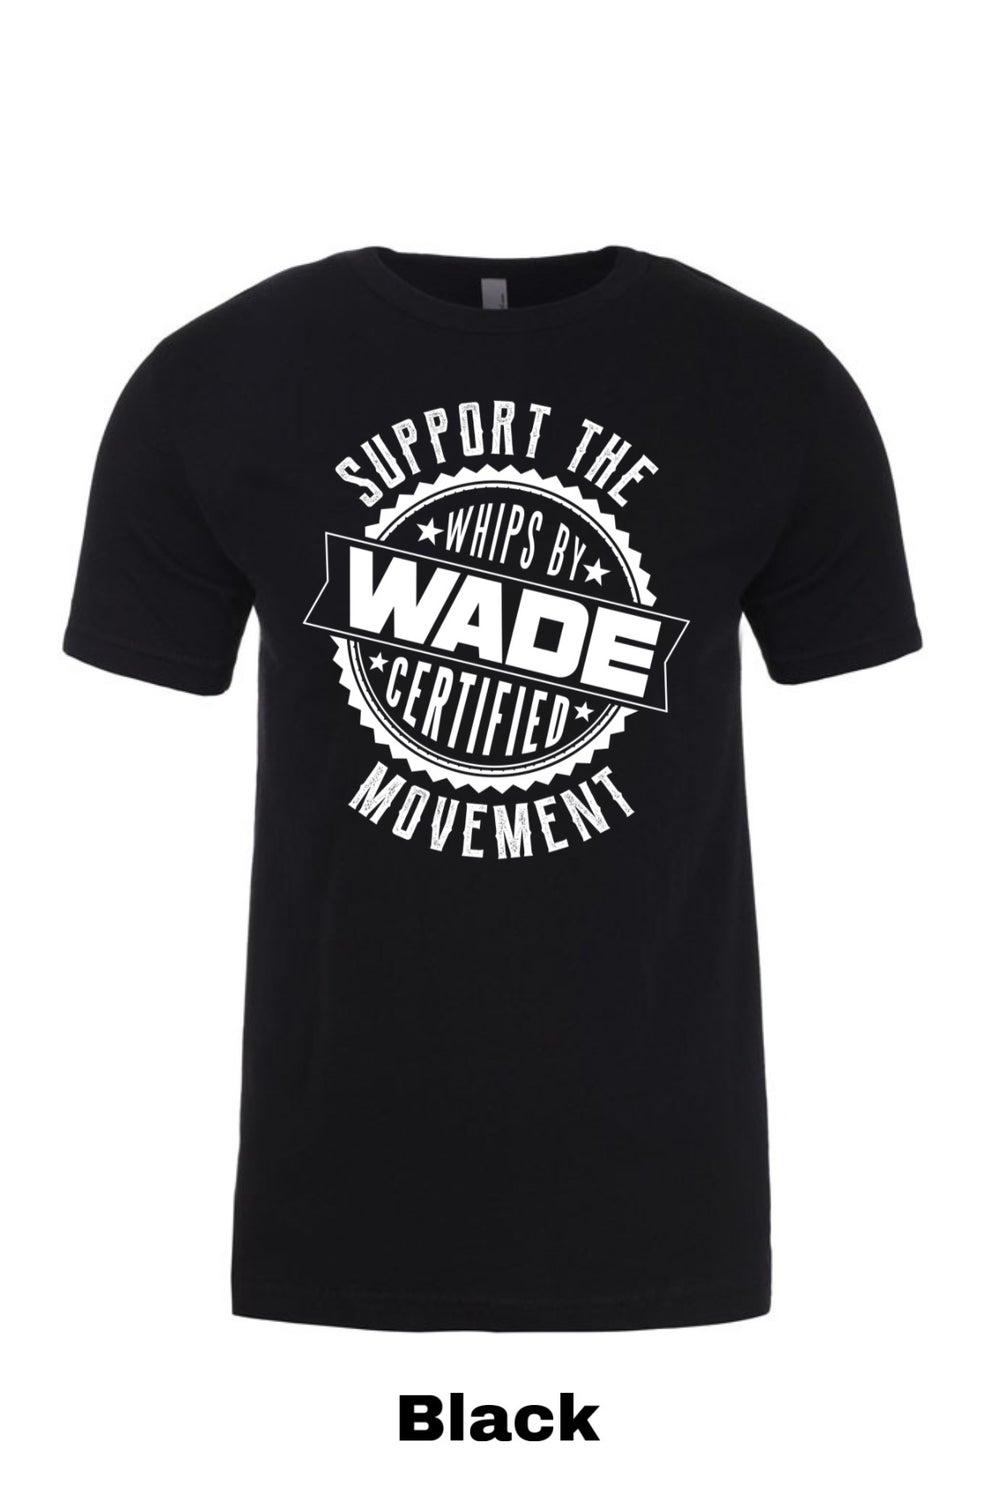 Support The Movement 2020 * PRE ORDER *